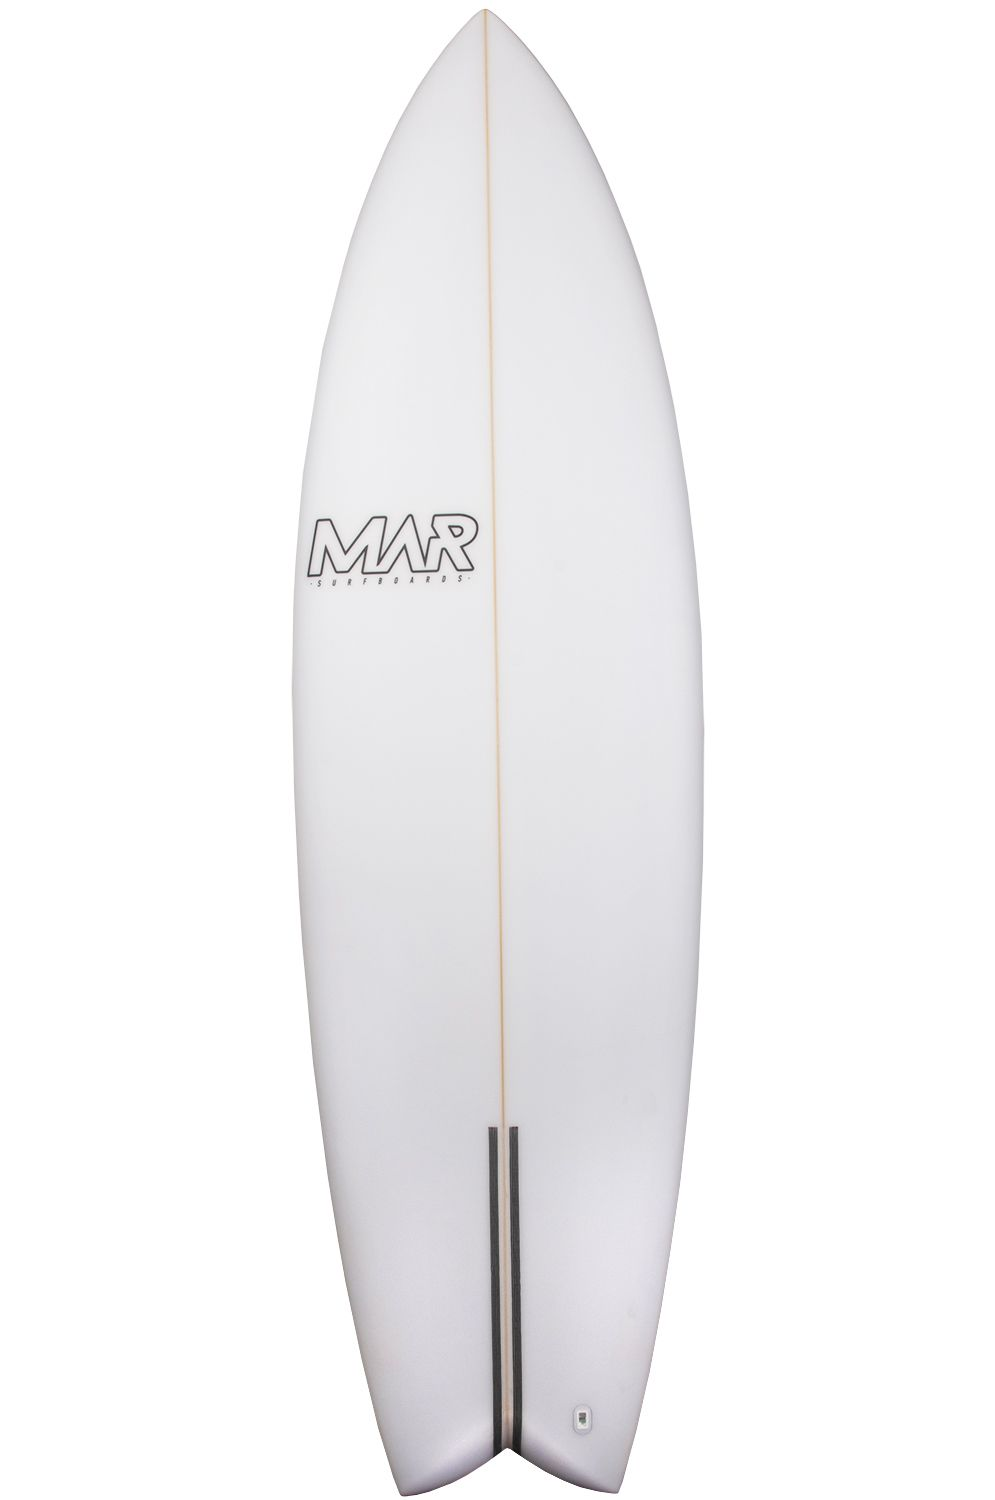 Mar Surf Board 6'6 THE 4 PU Fish Tail - White FCS II Multisystem 6ft6